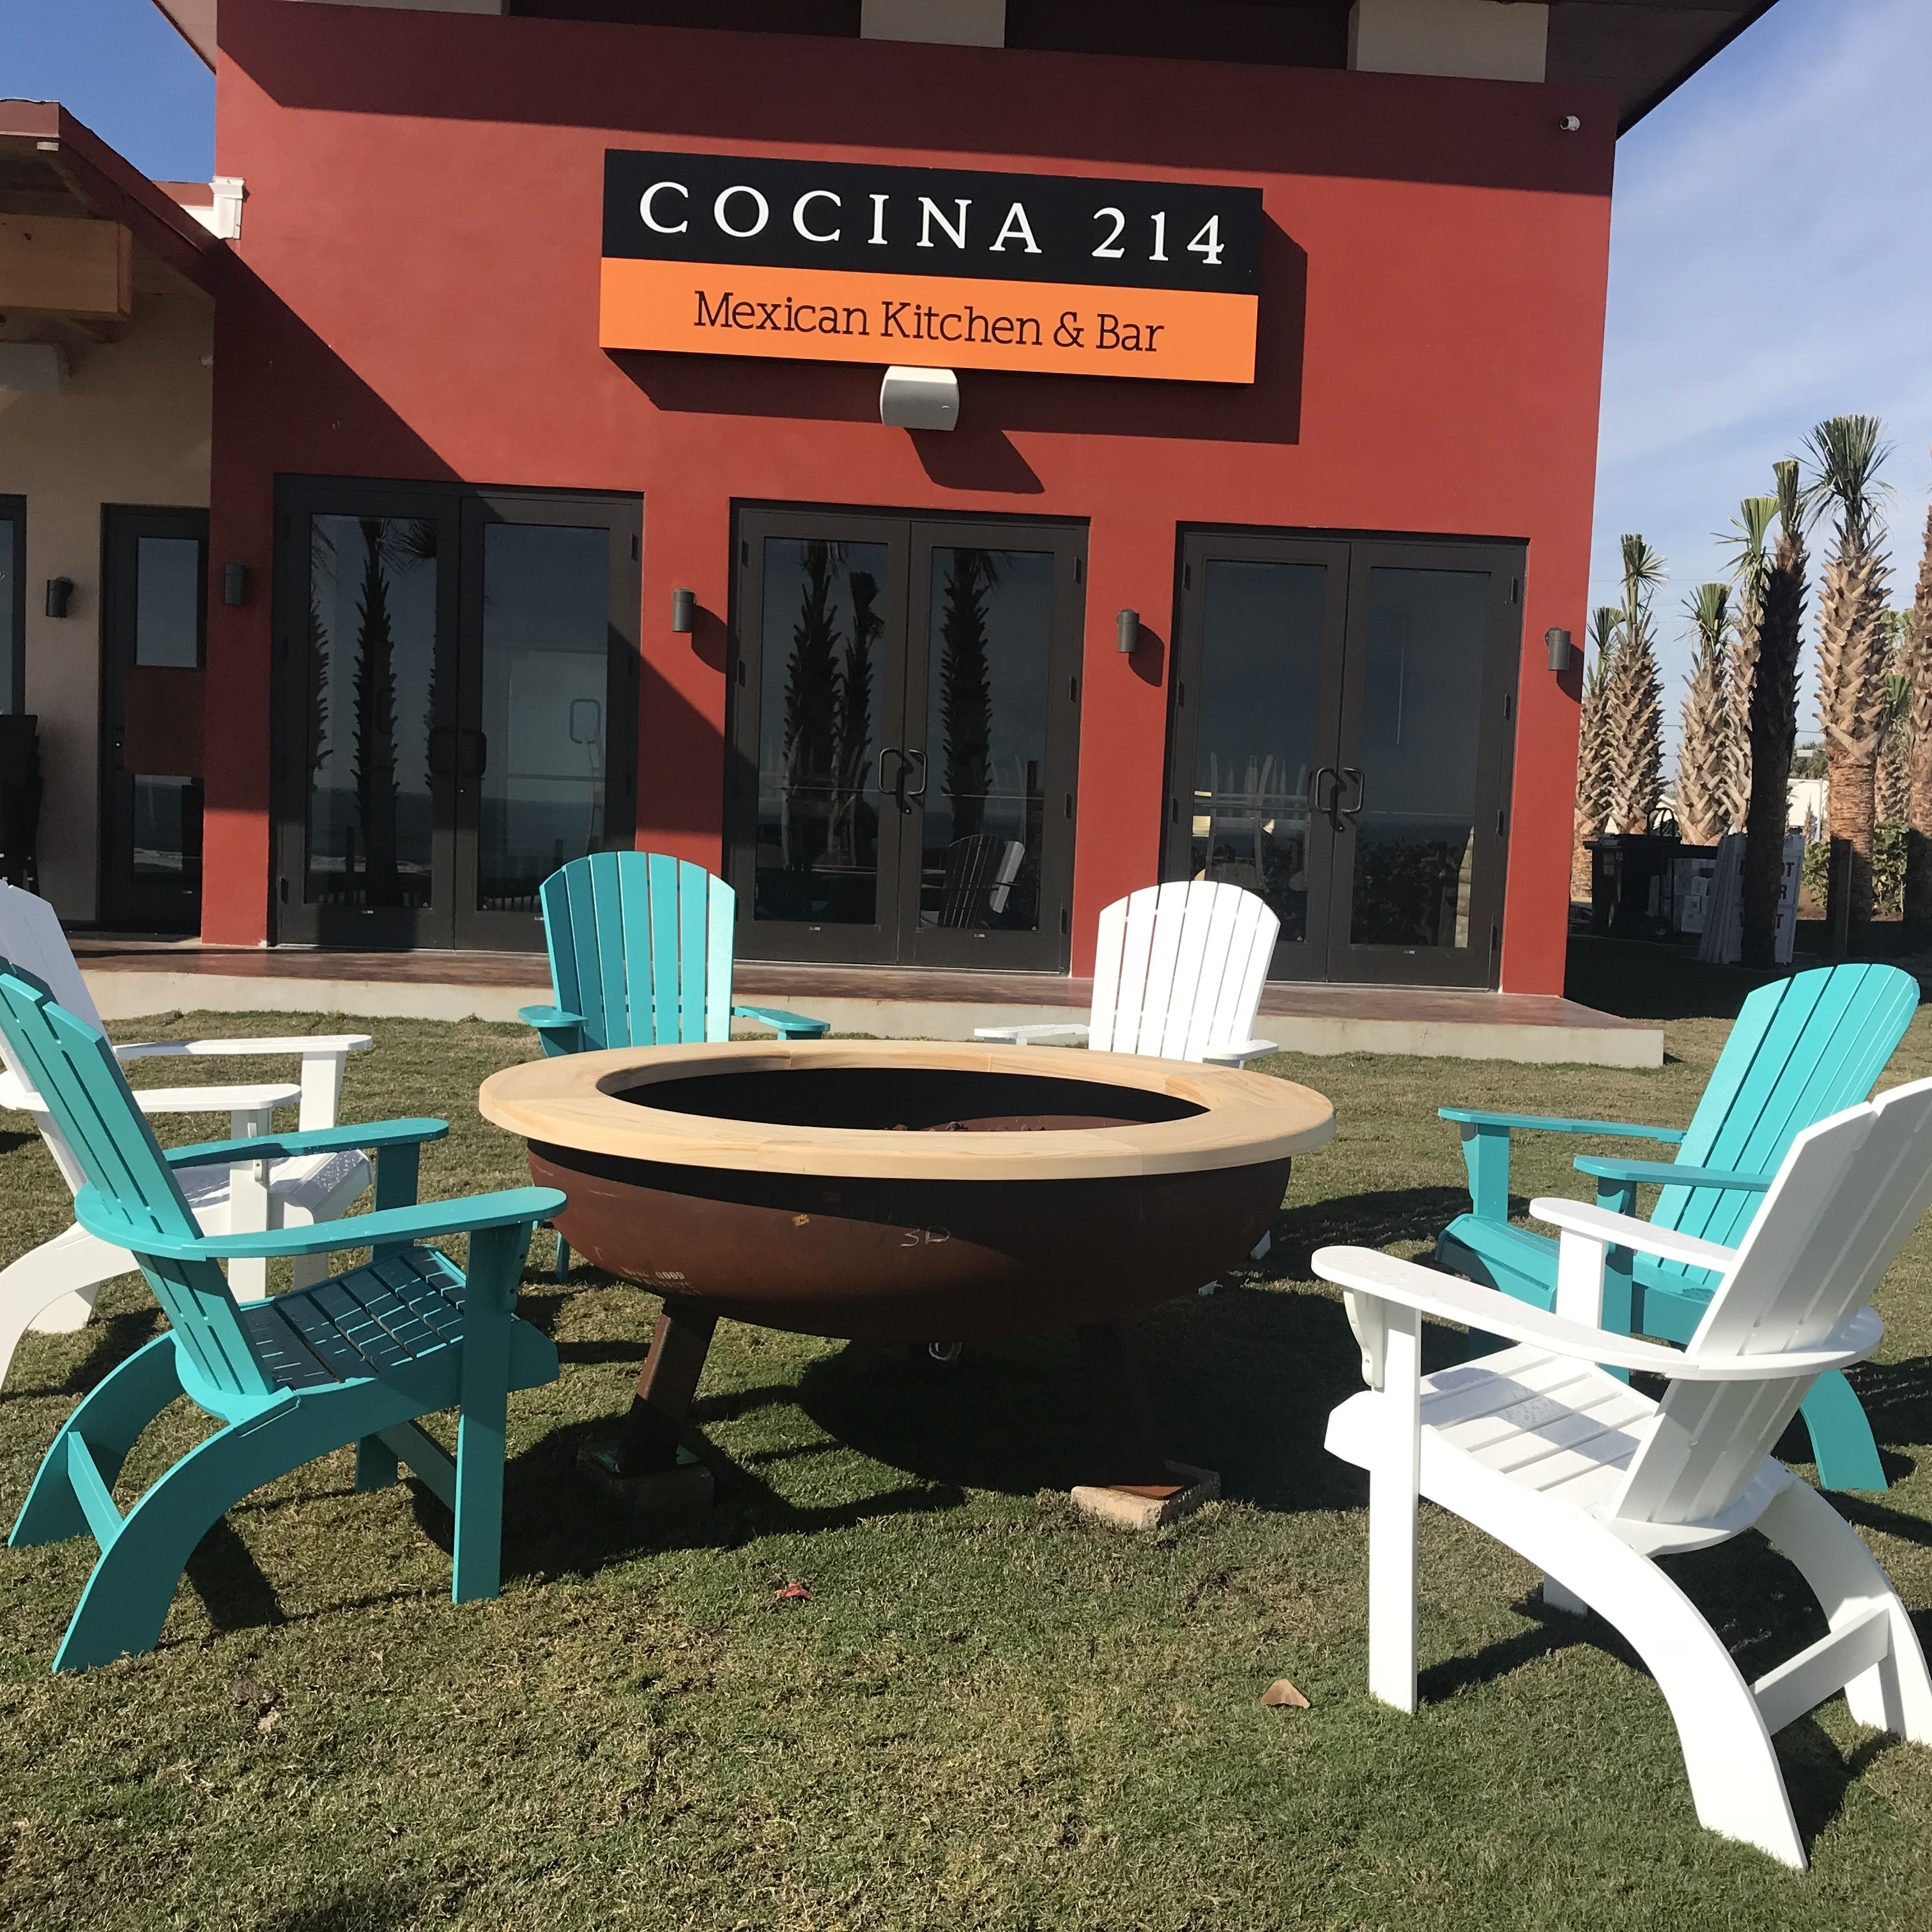 Bon Cocina 214 In Daytona Beach Needed Something Beautiful And Durable For  Their Firepit Areas. We Provided Windward COMFORT HEIGHT Adirondack Chairs .